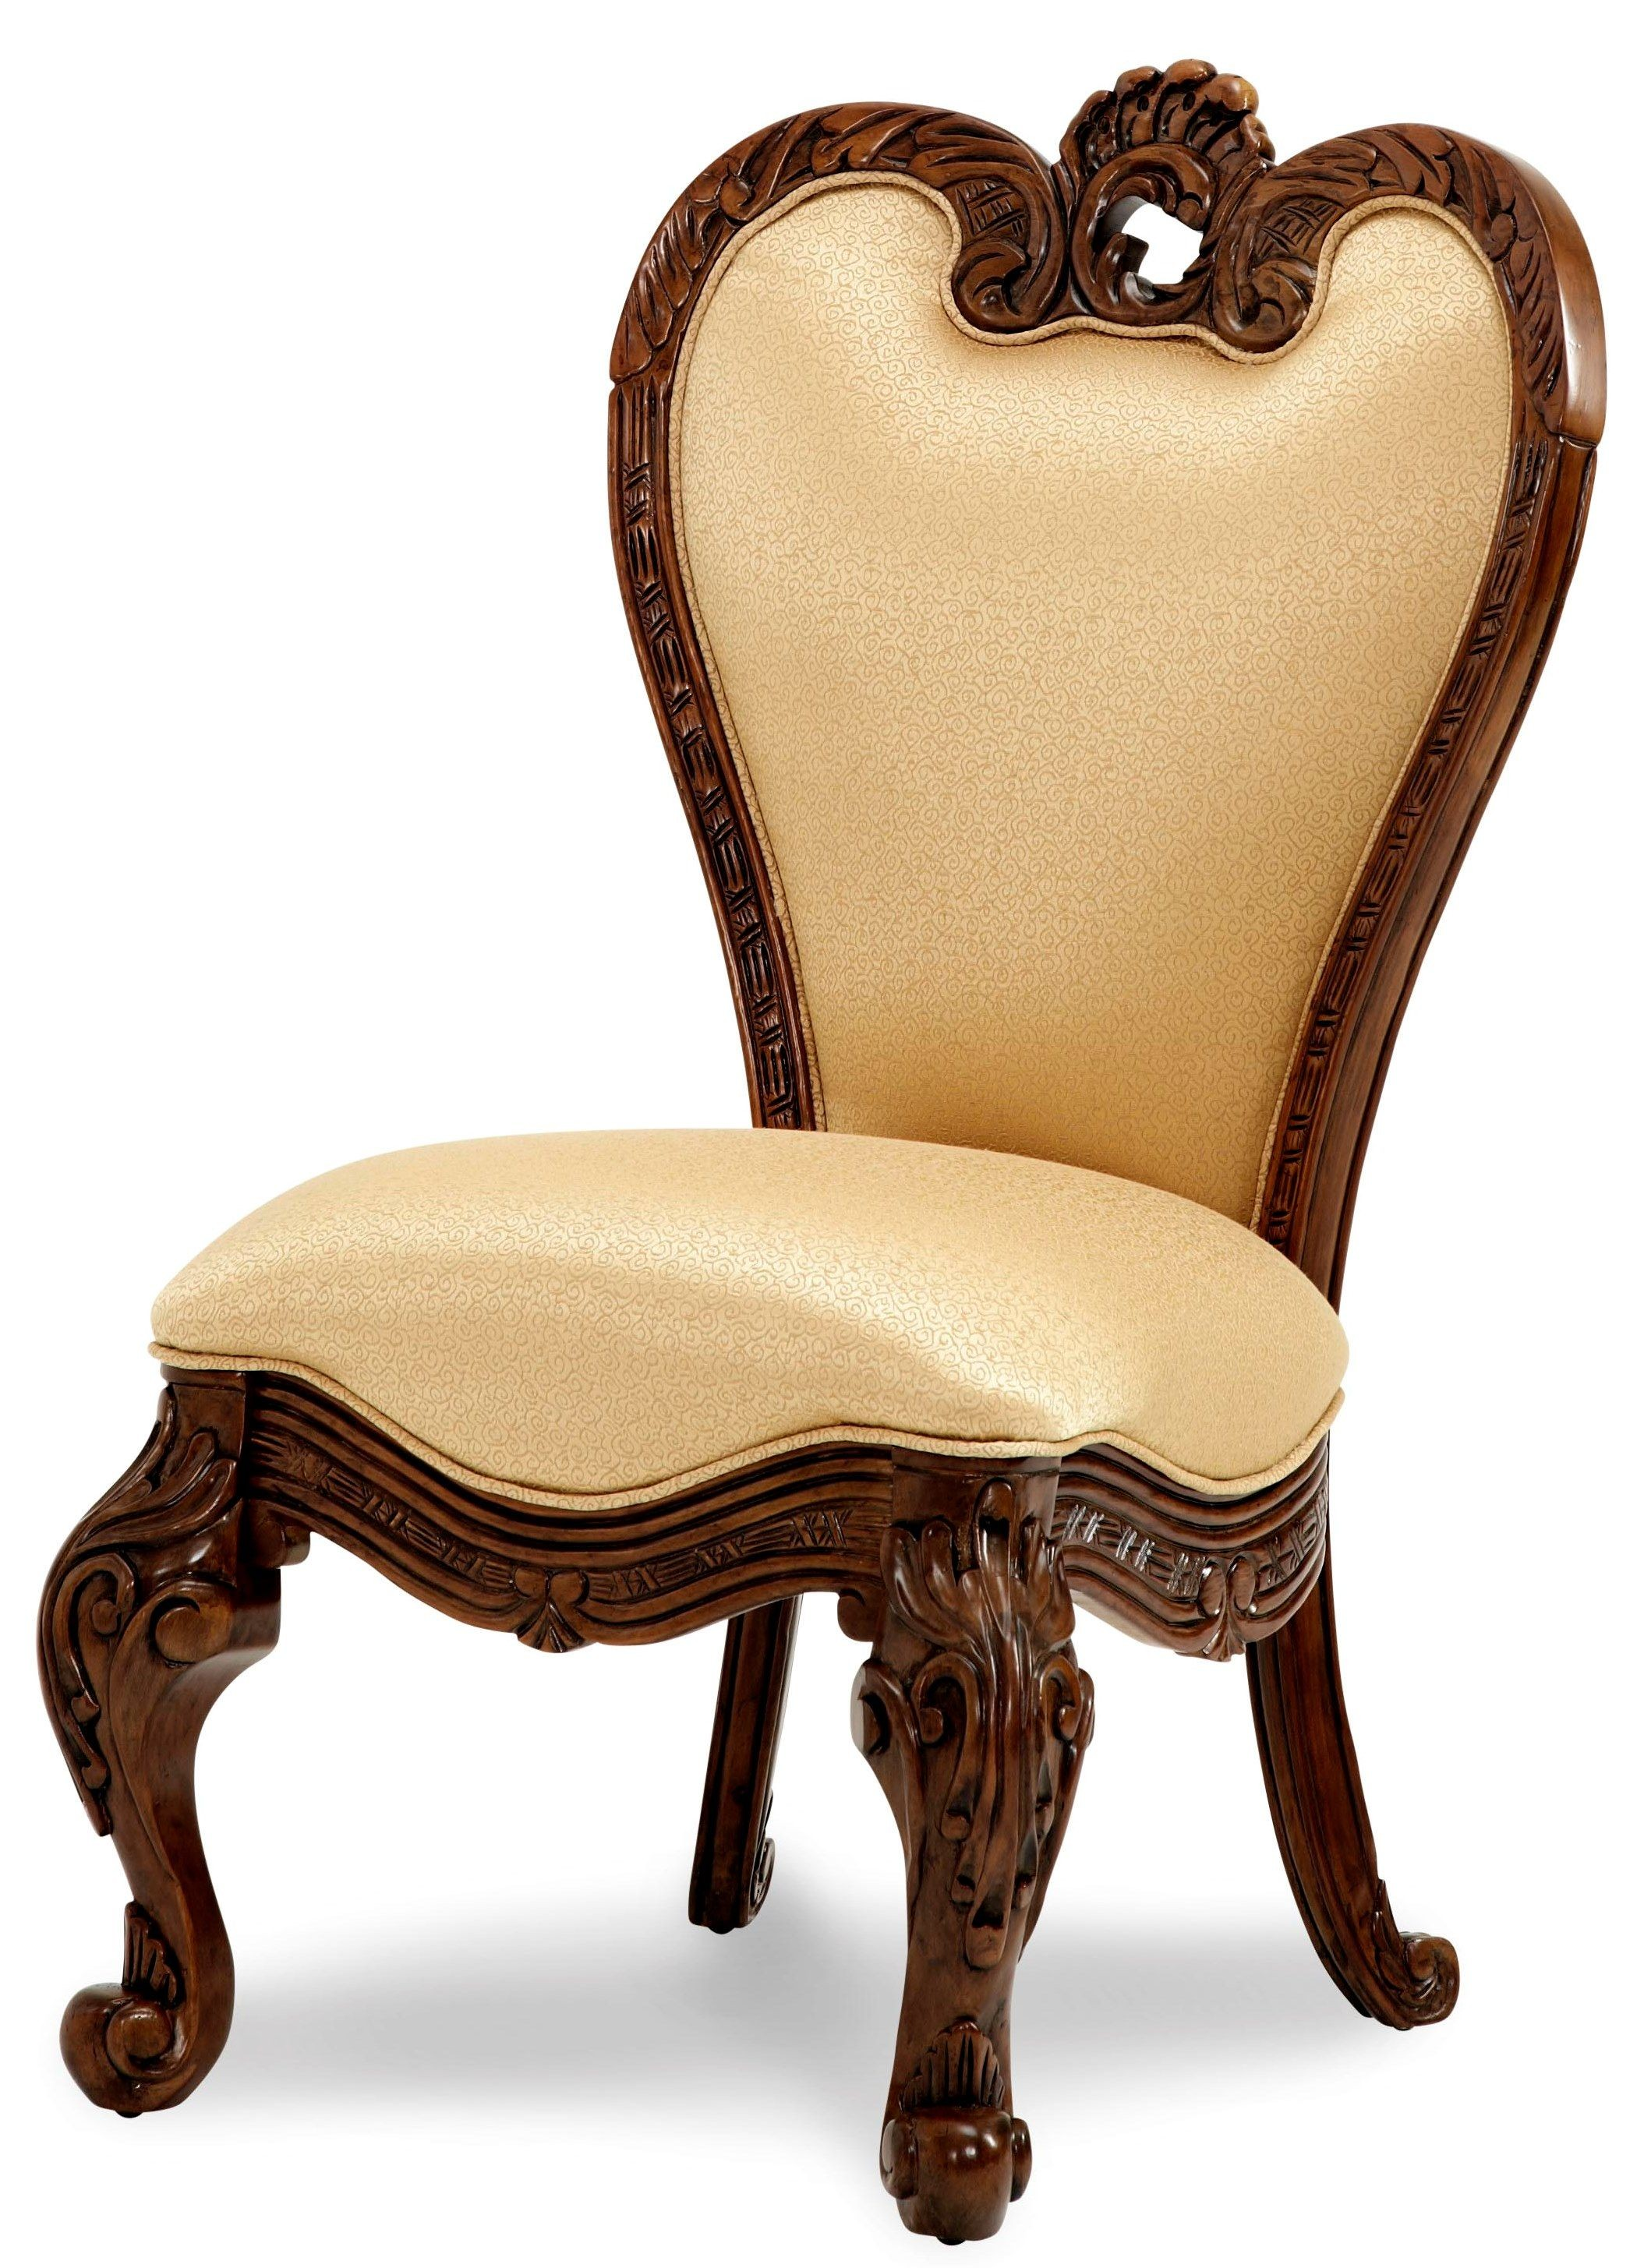 Palais Royale Vanity Chair from Aico 35